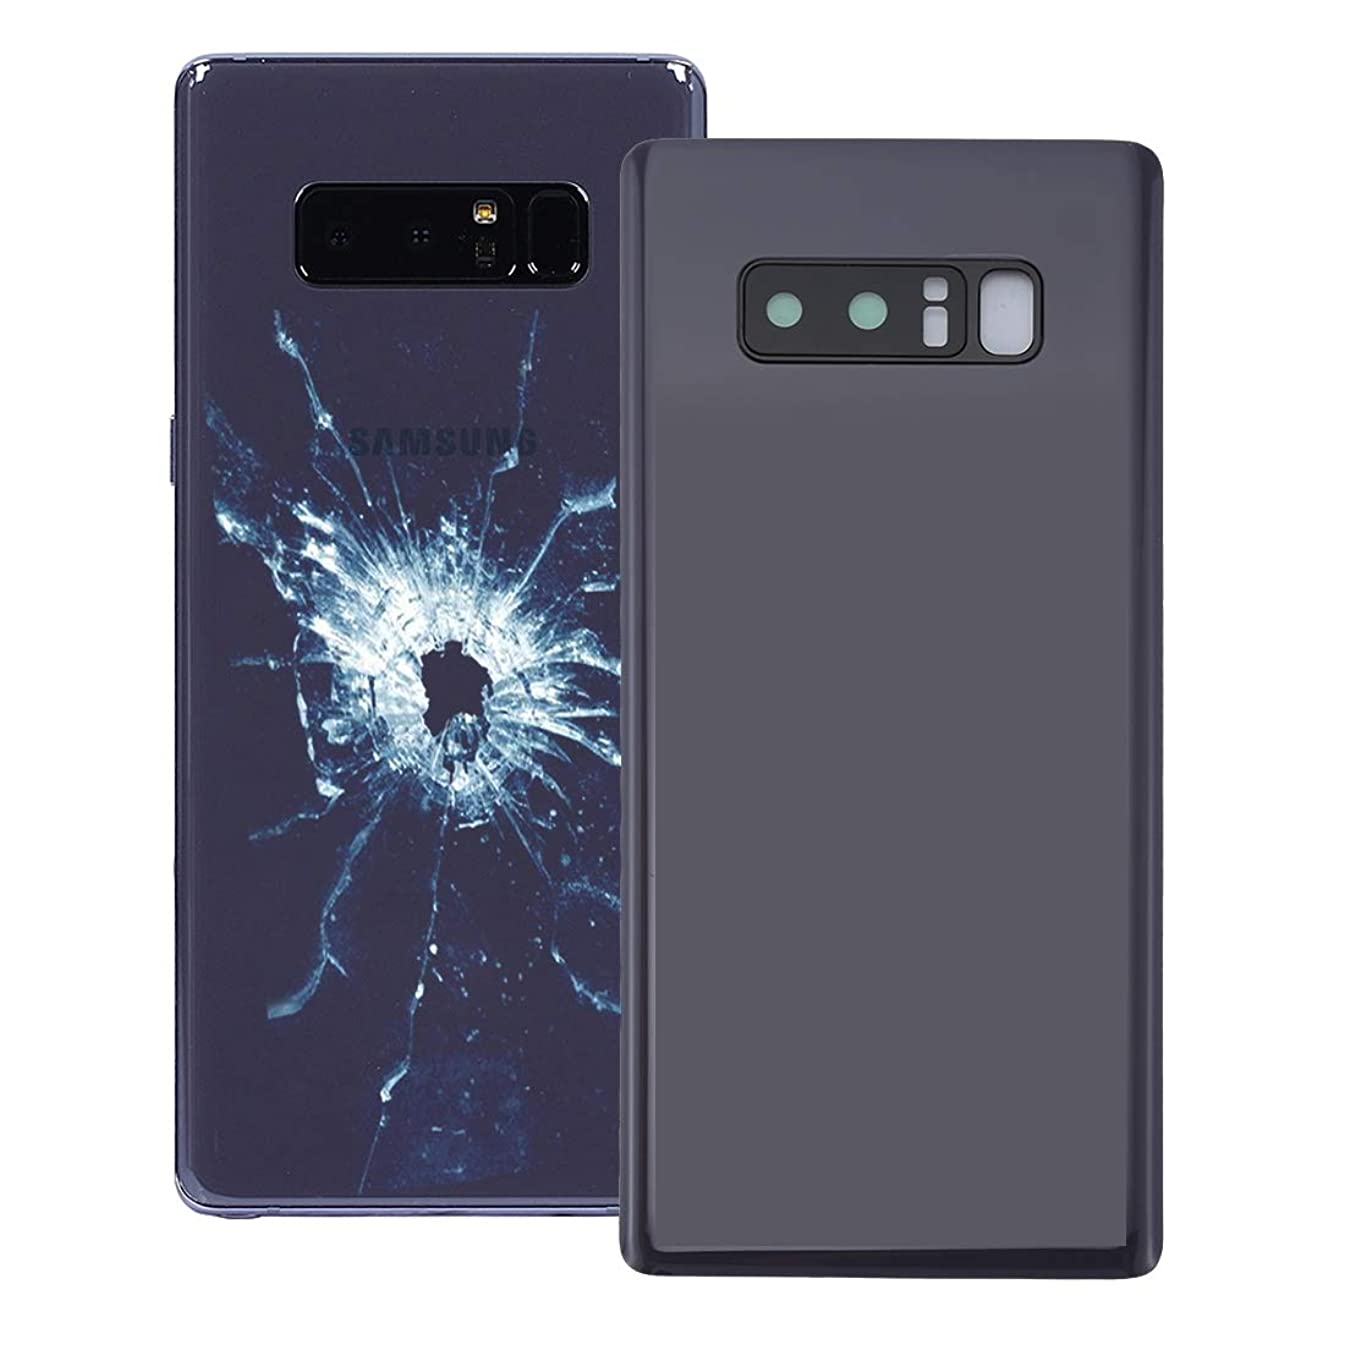 YUANLI Phone Spare Part Back Cover with Camera Lens Cover for Galaxy Note 8(Black) (Color : Grey)